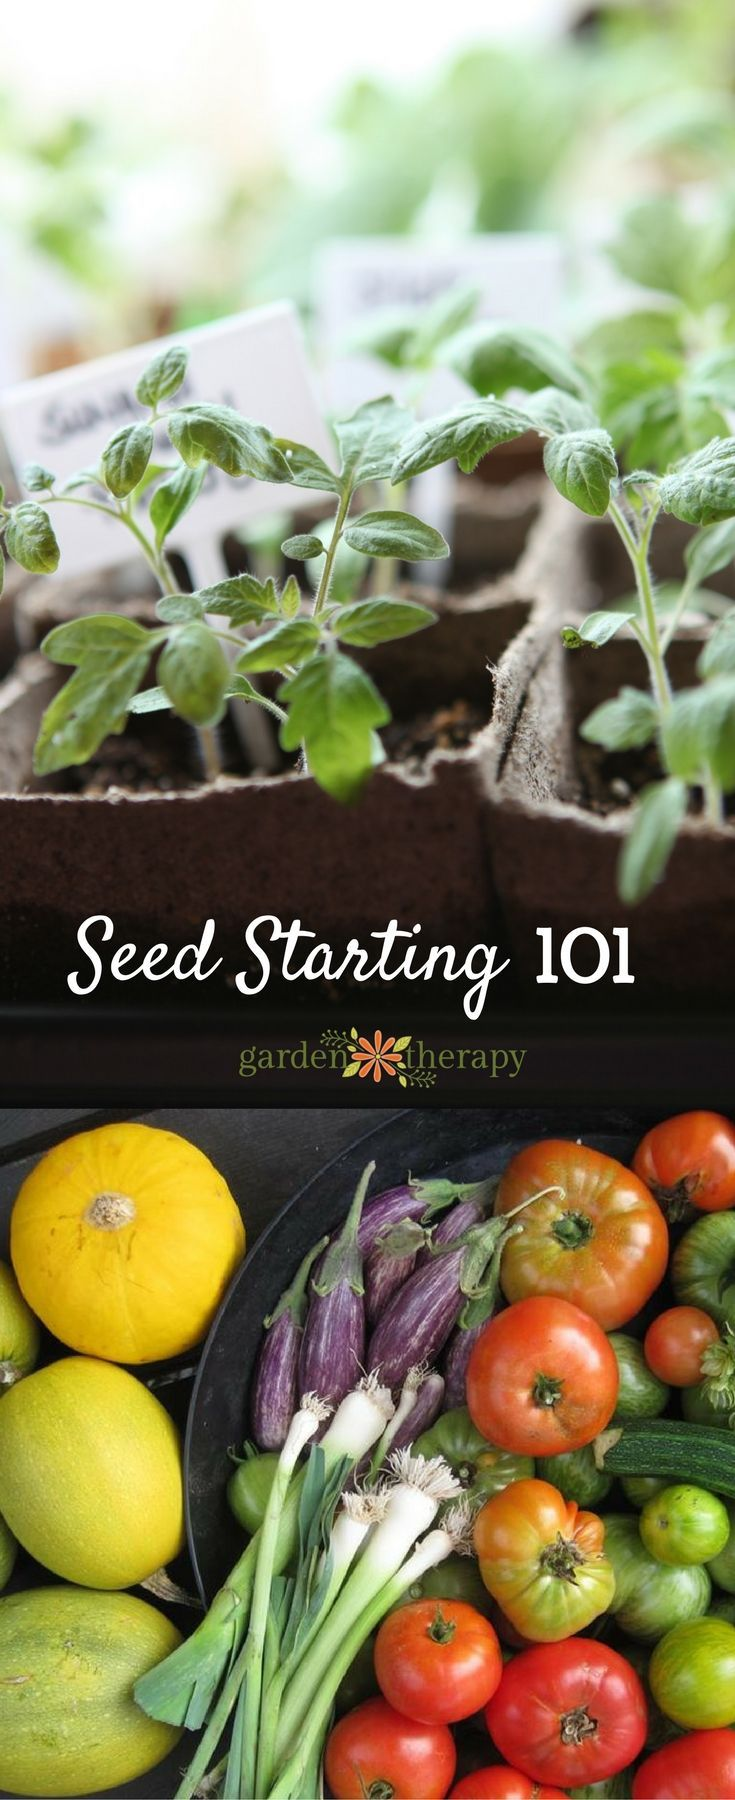 Seed starting 101 the basics for home seed starting #gardentrends #gardentherapy #gardentherapyseeds #seeds #seedstarting #growyourown #gardening